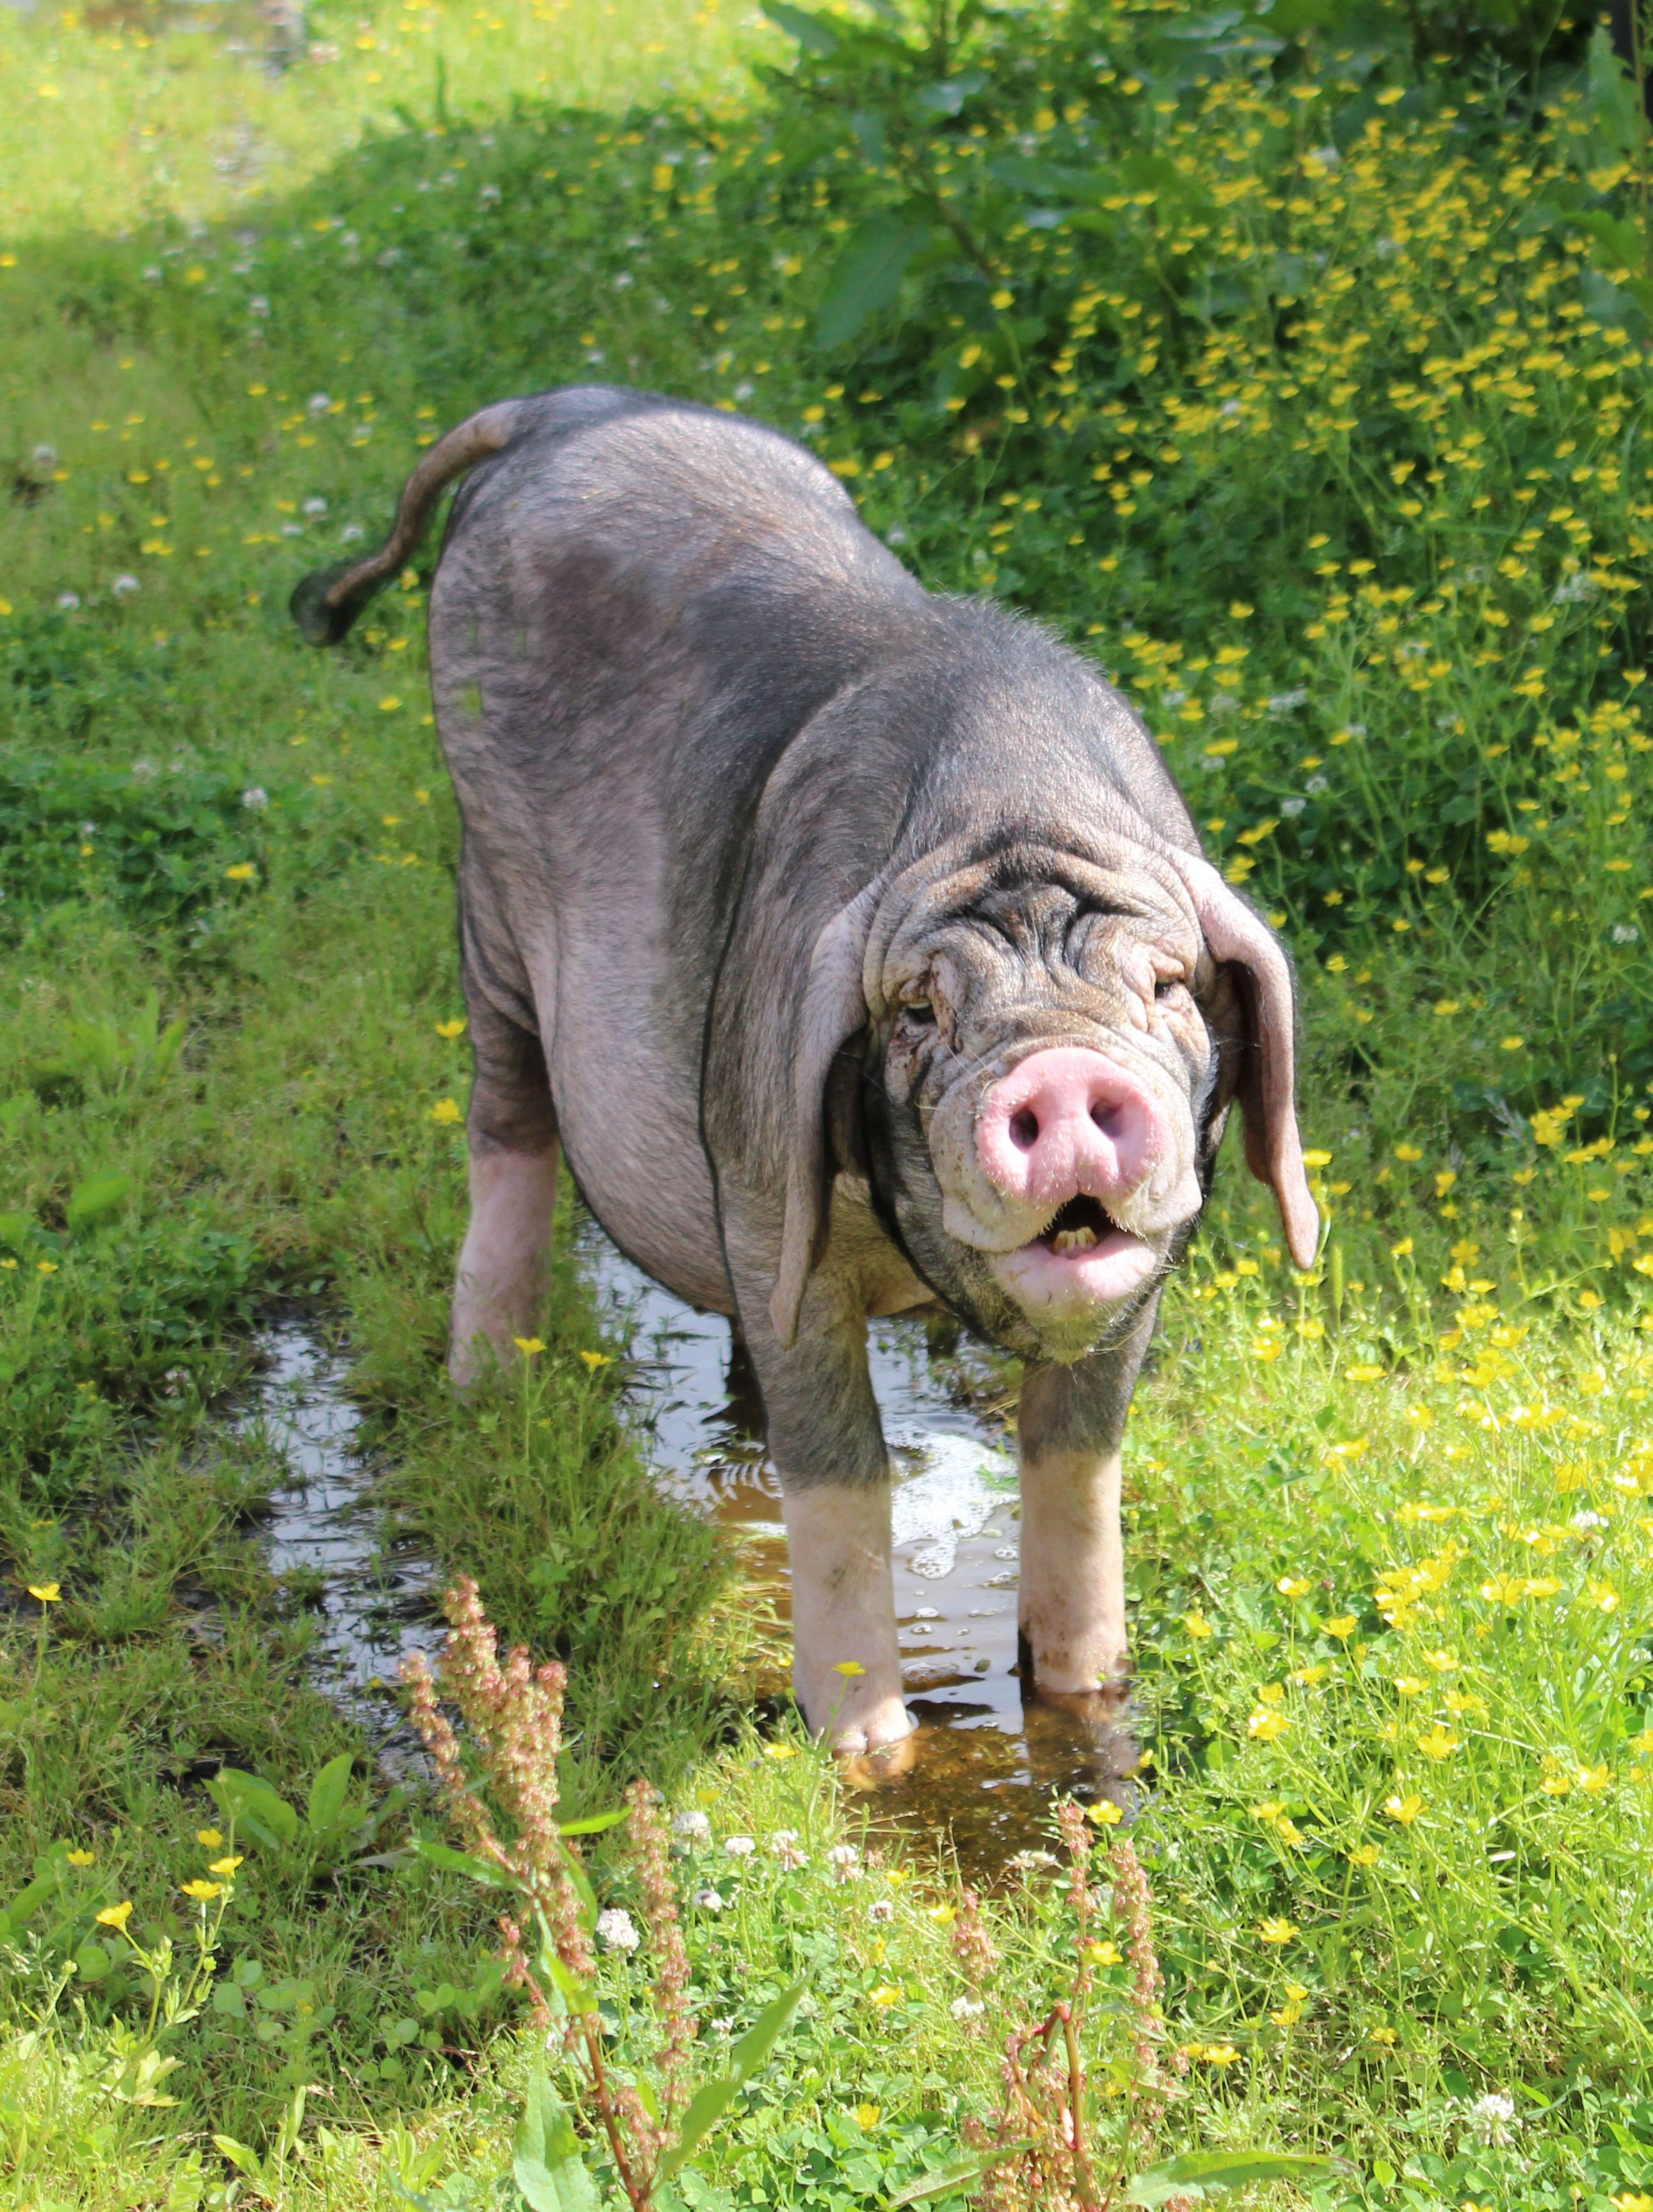 the Meishan pig. Rare breed pig originating from